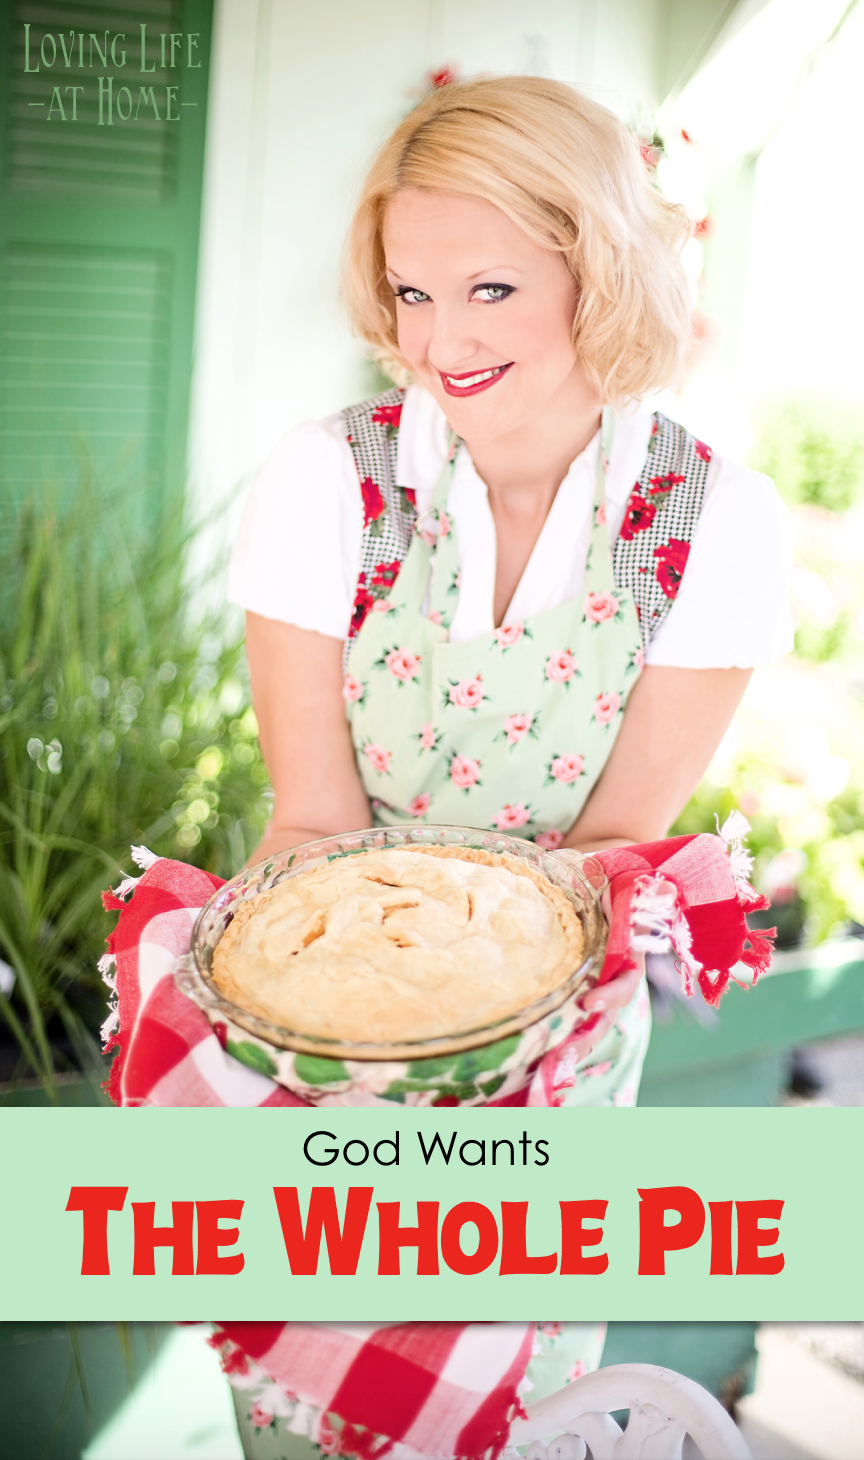 Give God the Whole Pie: He doesn't just want the first slice or the biggest slice, He wants the whole thing.